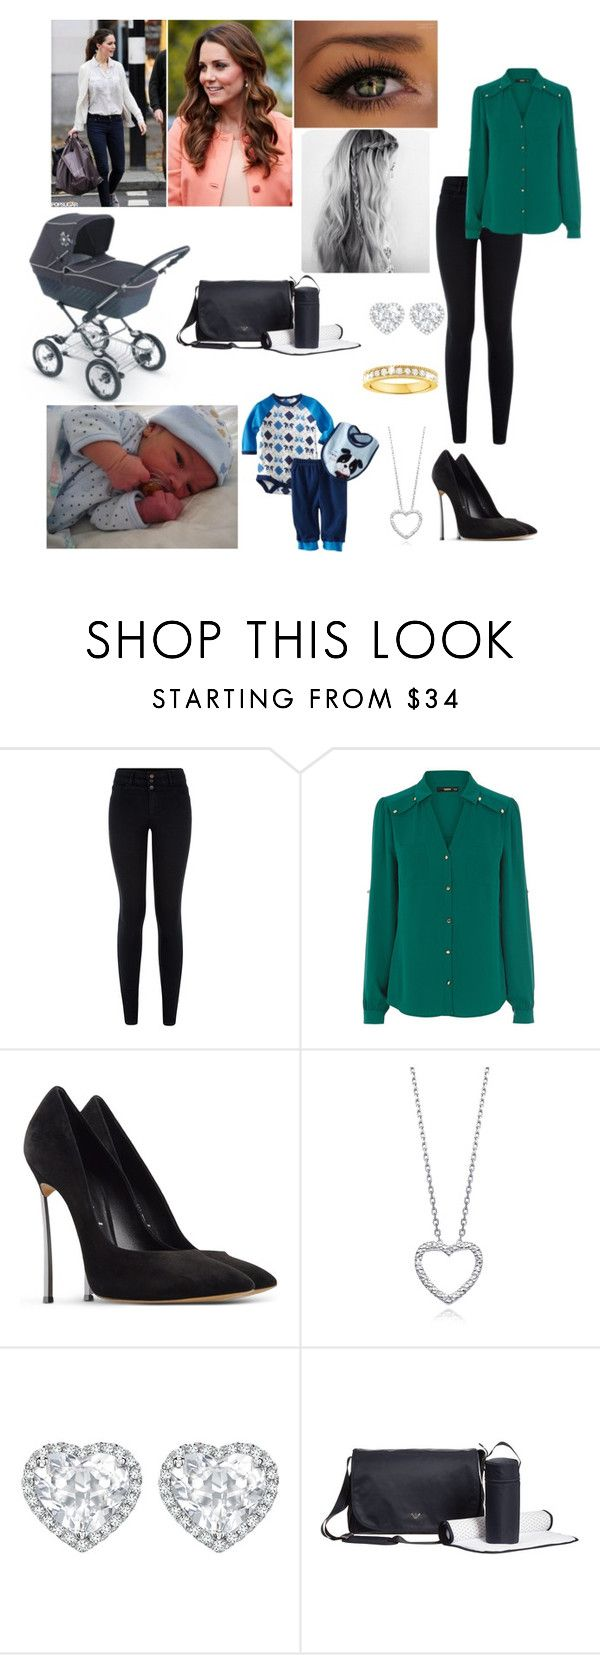 """Shopping With Kate For Christmas Presents"" by dawn-windsor ❤ liked on Polyvore featuring Casadei, Bebe, Zara Home, Kiki mcdonough and Giorgio Armani"